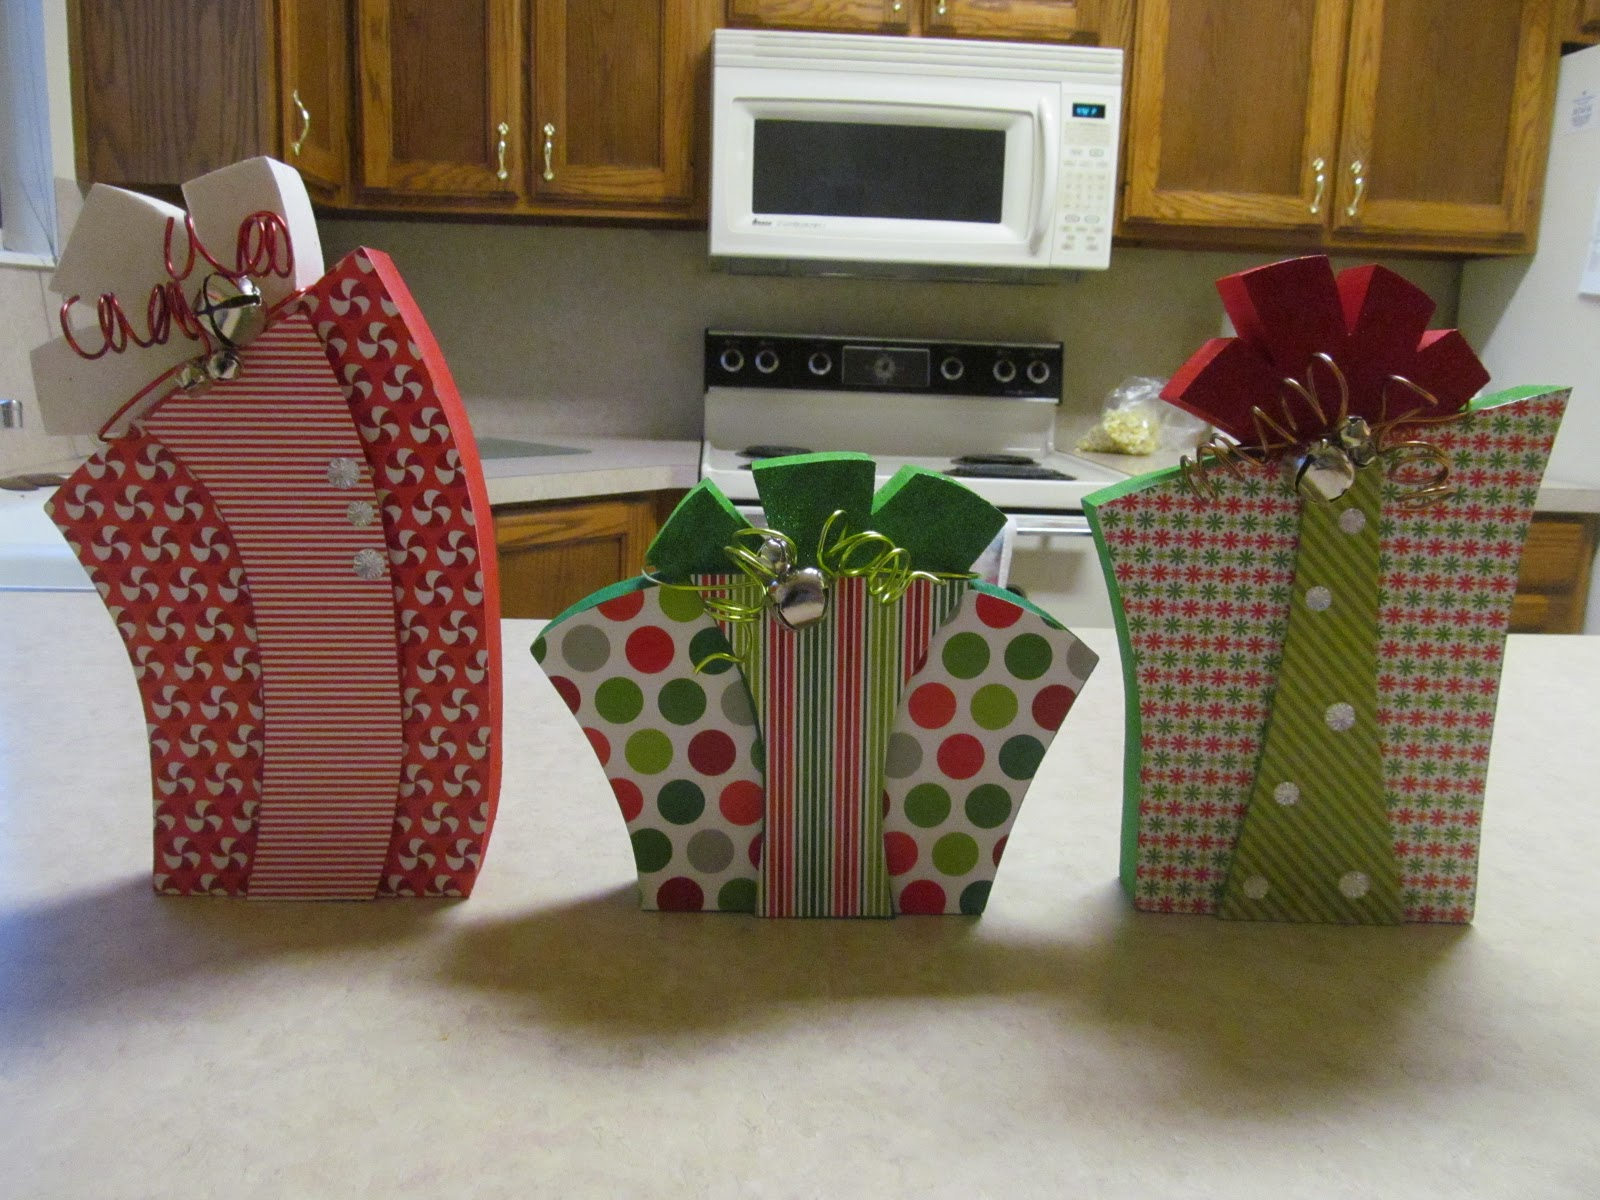 WOOD Creations: Christmas Present Wood Craft Tutorial by Guest Blogger ...